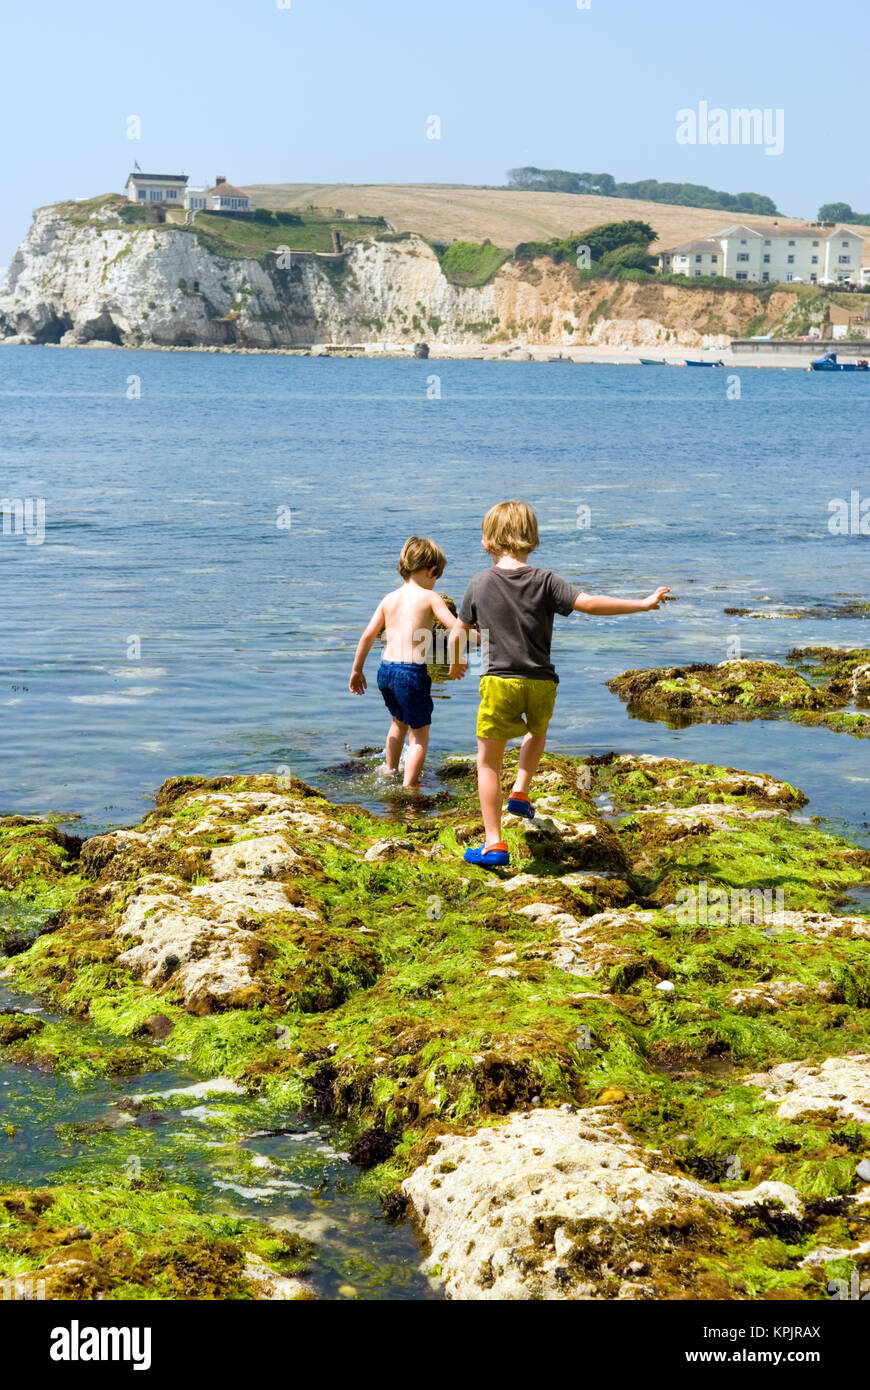 two young boys scramble over the rocks by the sea at low tide, Freshwater Bay, Isle of Wight, UK - Stock Image